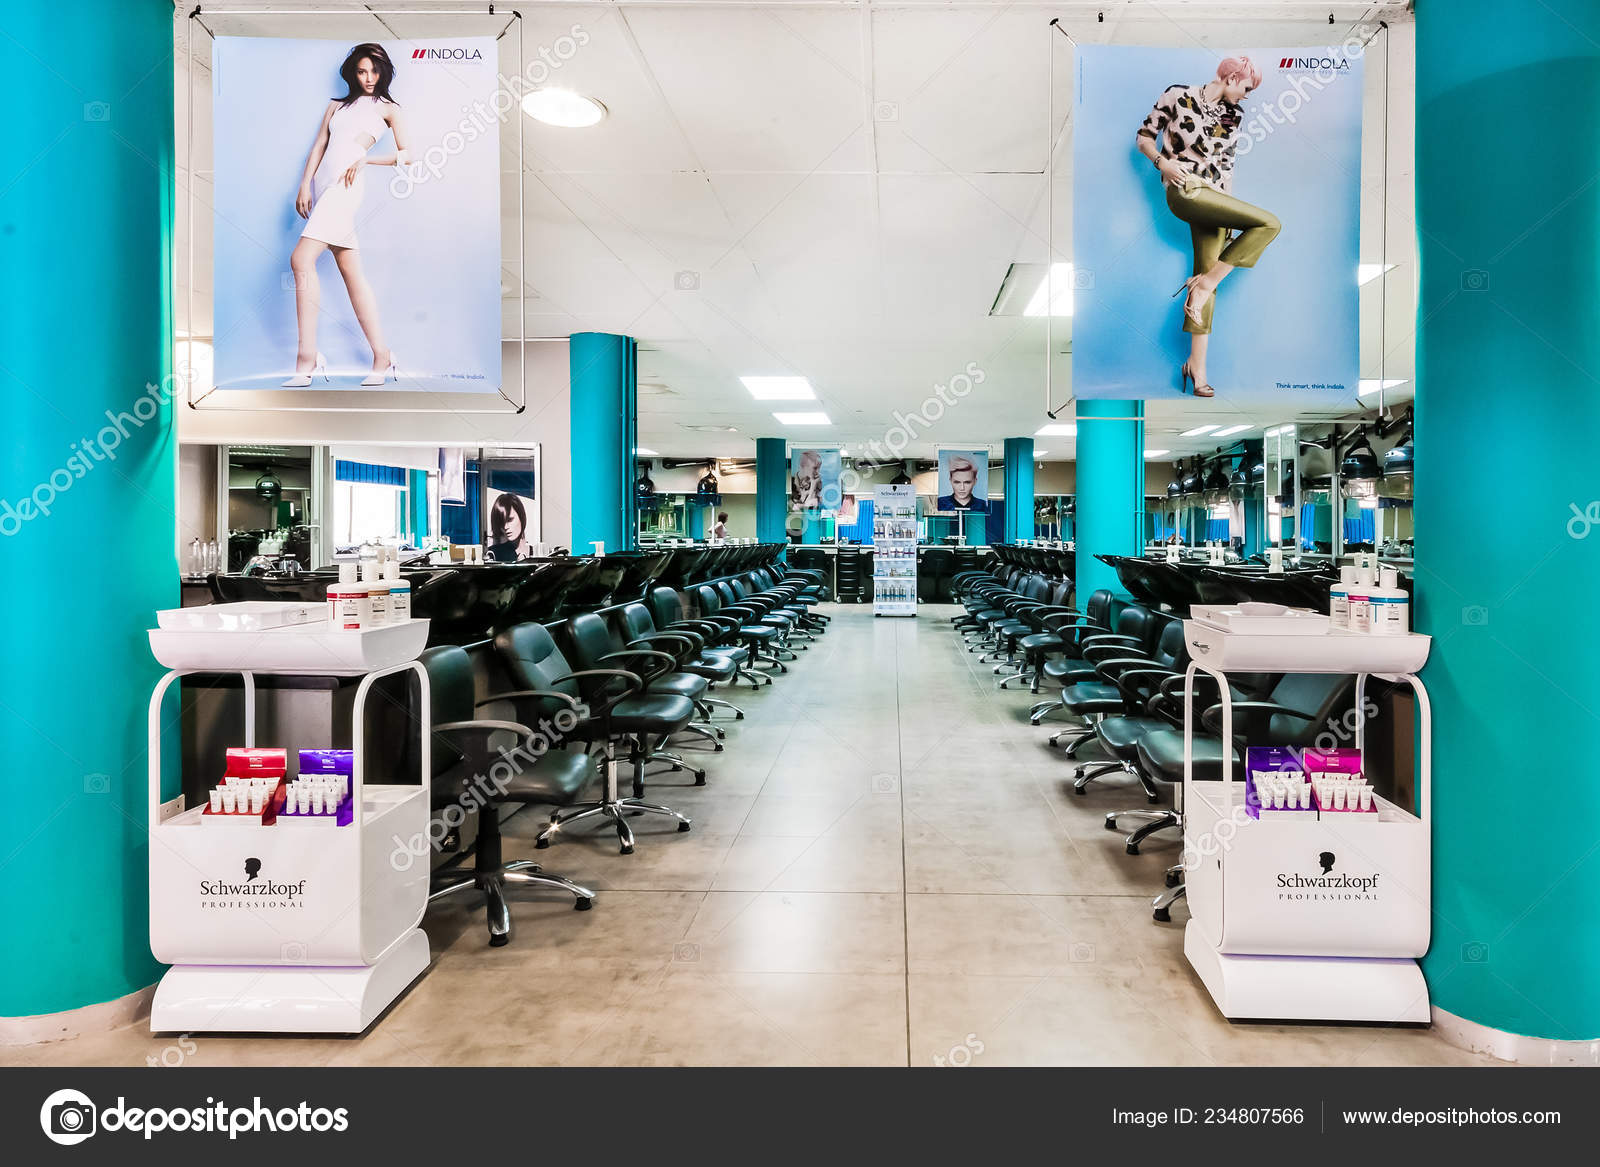 Johannesburg South Africa February 2015 Interior Beauty School Hairdresser Stock Editorial Photo C Sunshineseeds 234807566